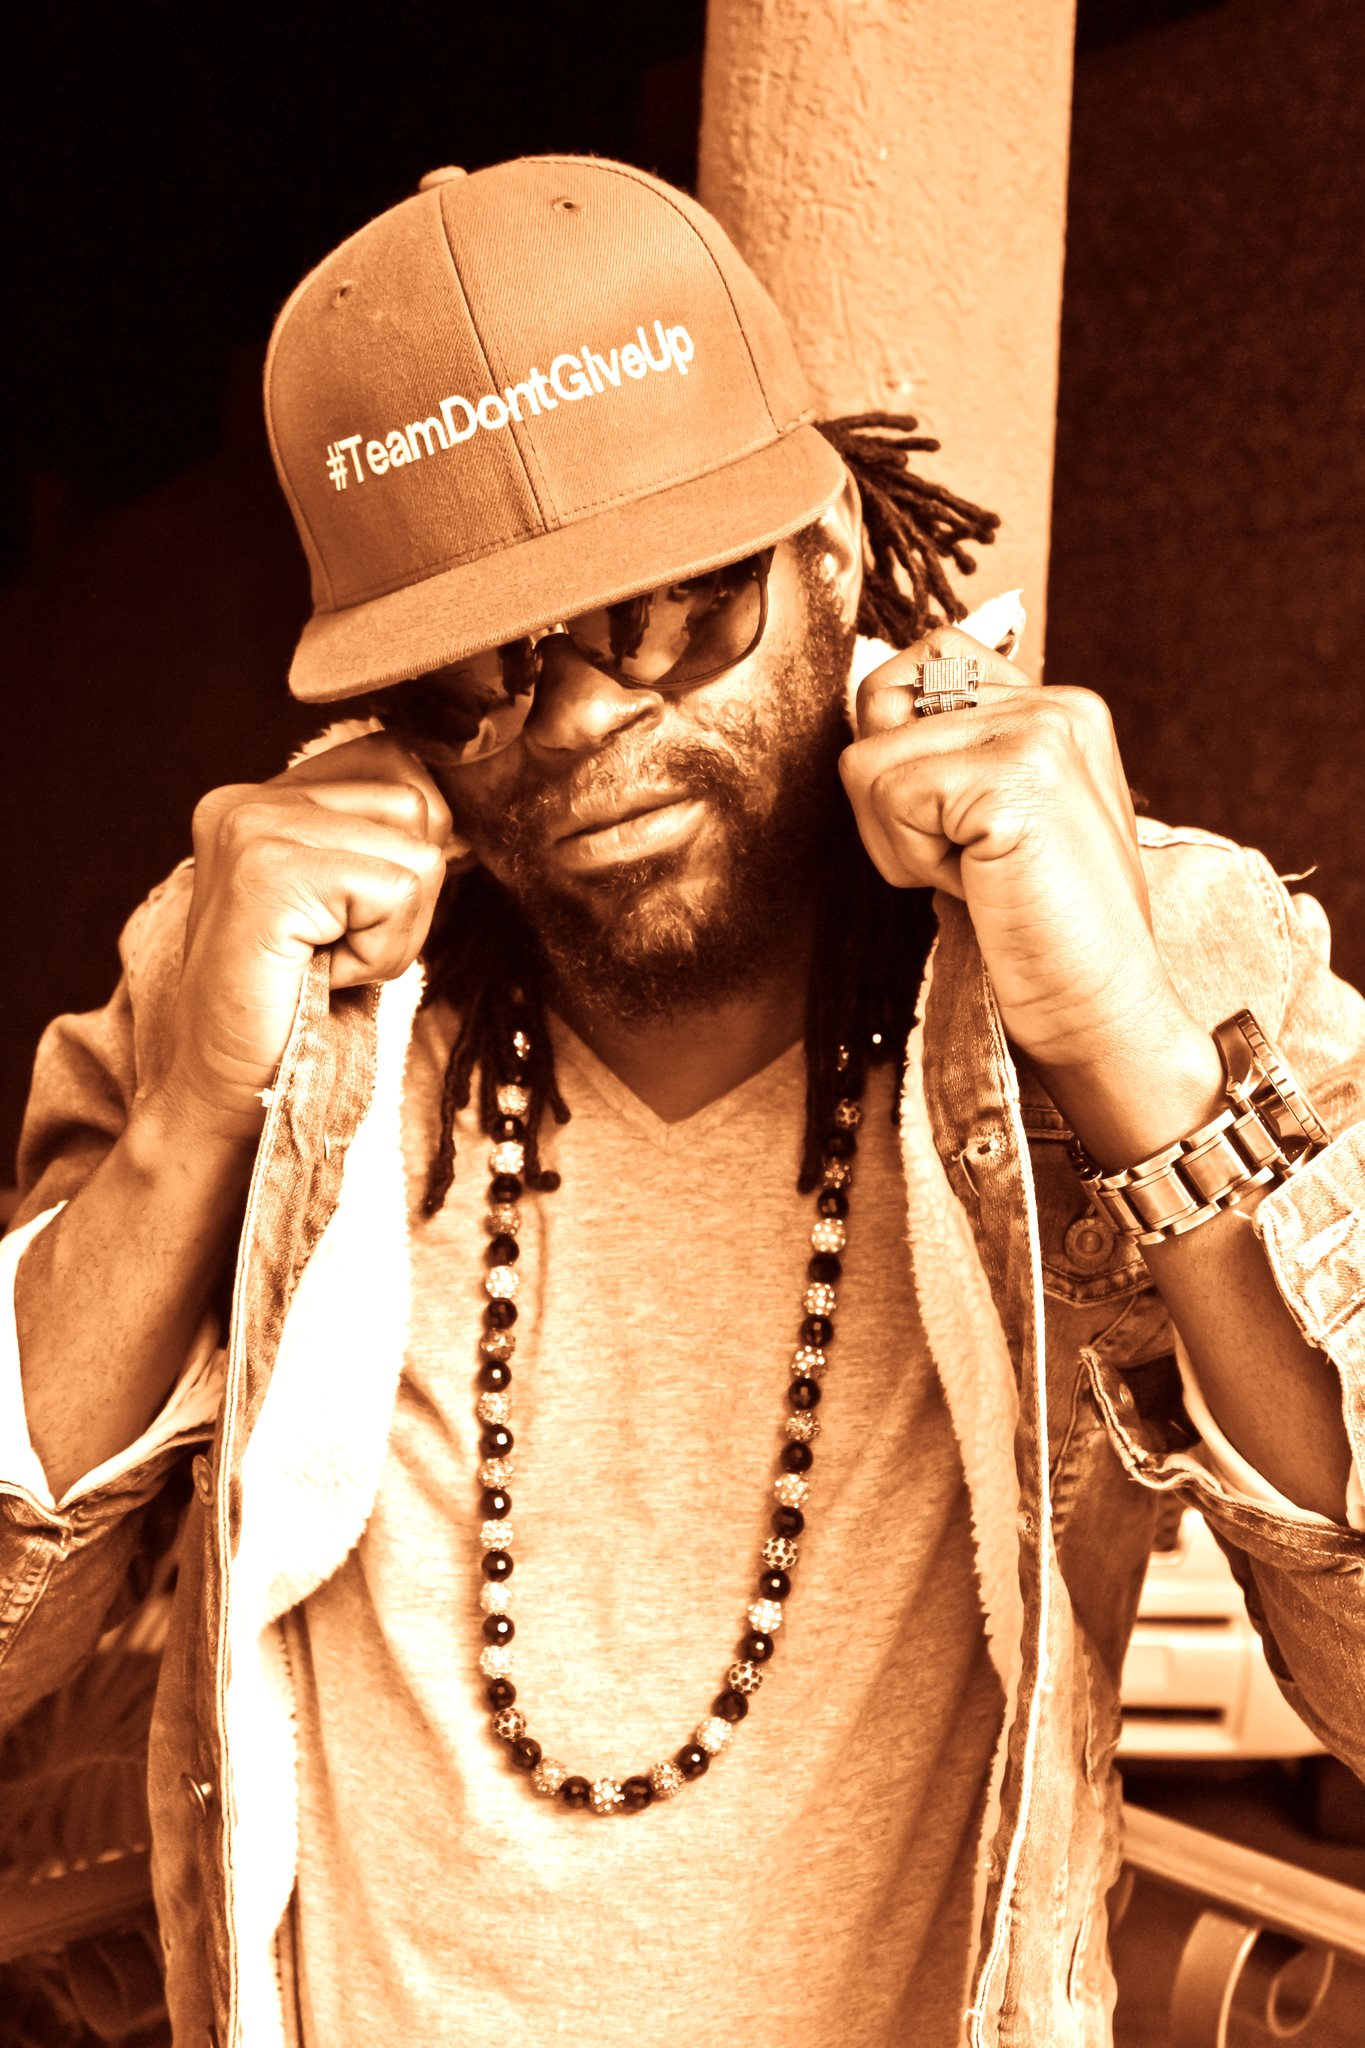 BUGLE TALKS ABOUT POTENTIAL CLOTHING LINE, 2 NEW ALBUM & WORKING WITH SLY & ROBBIE